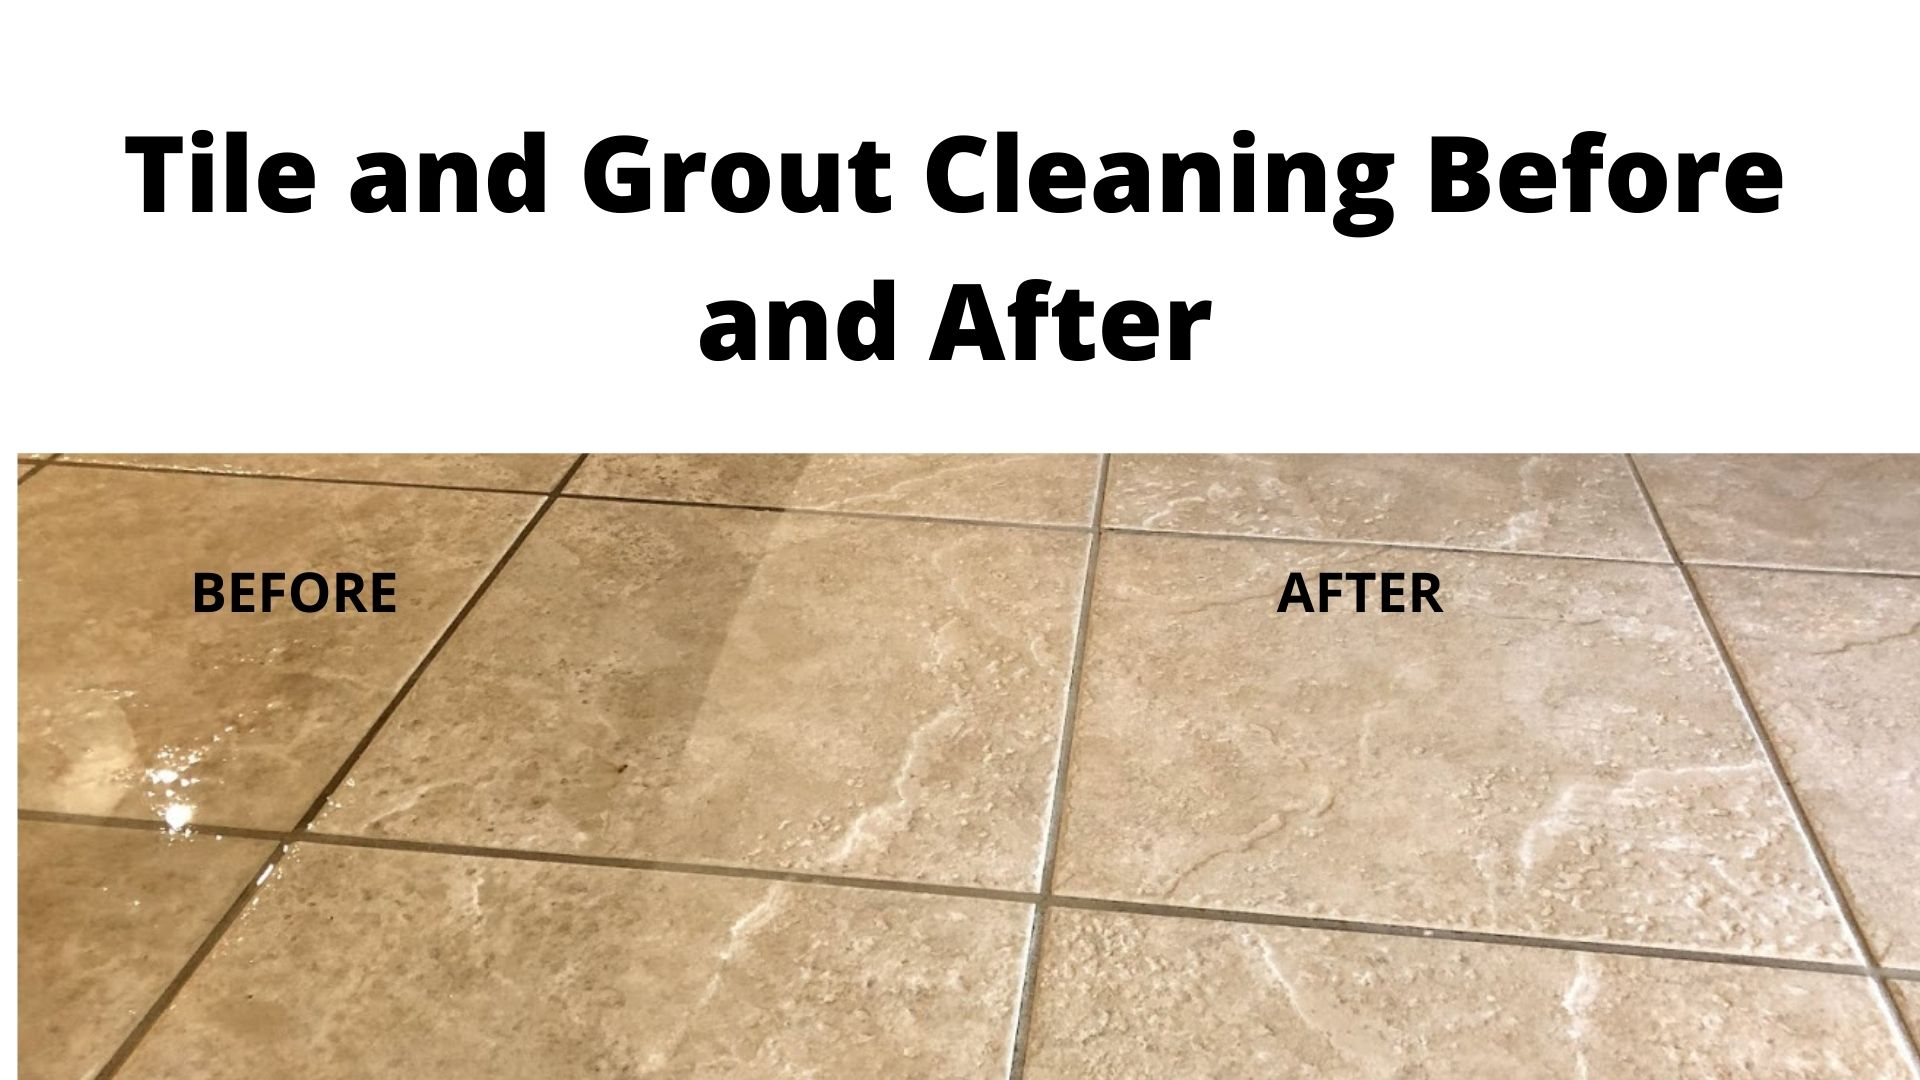 tile and grout cleaning before and